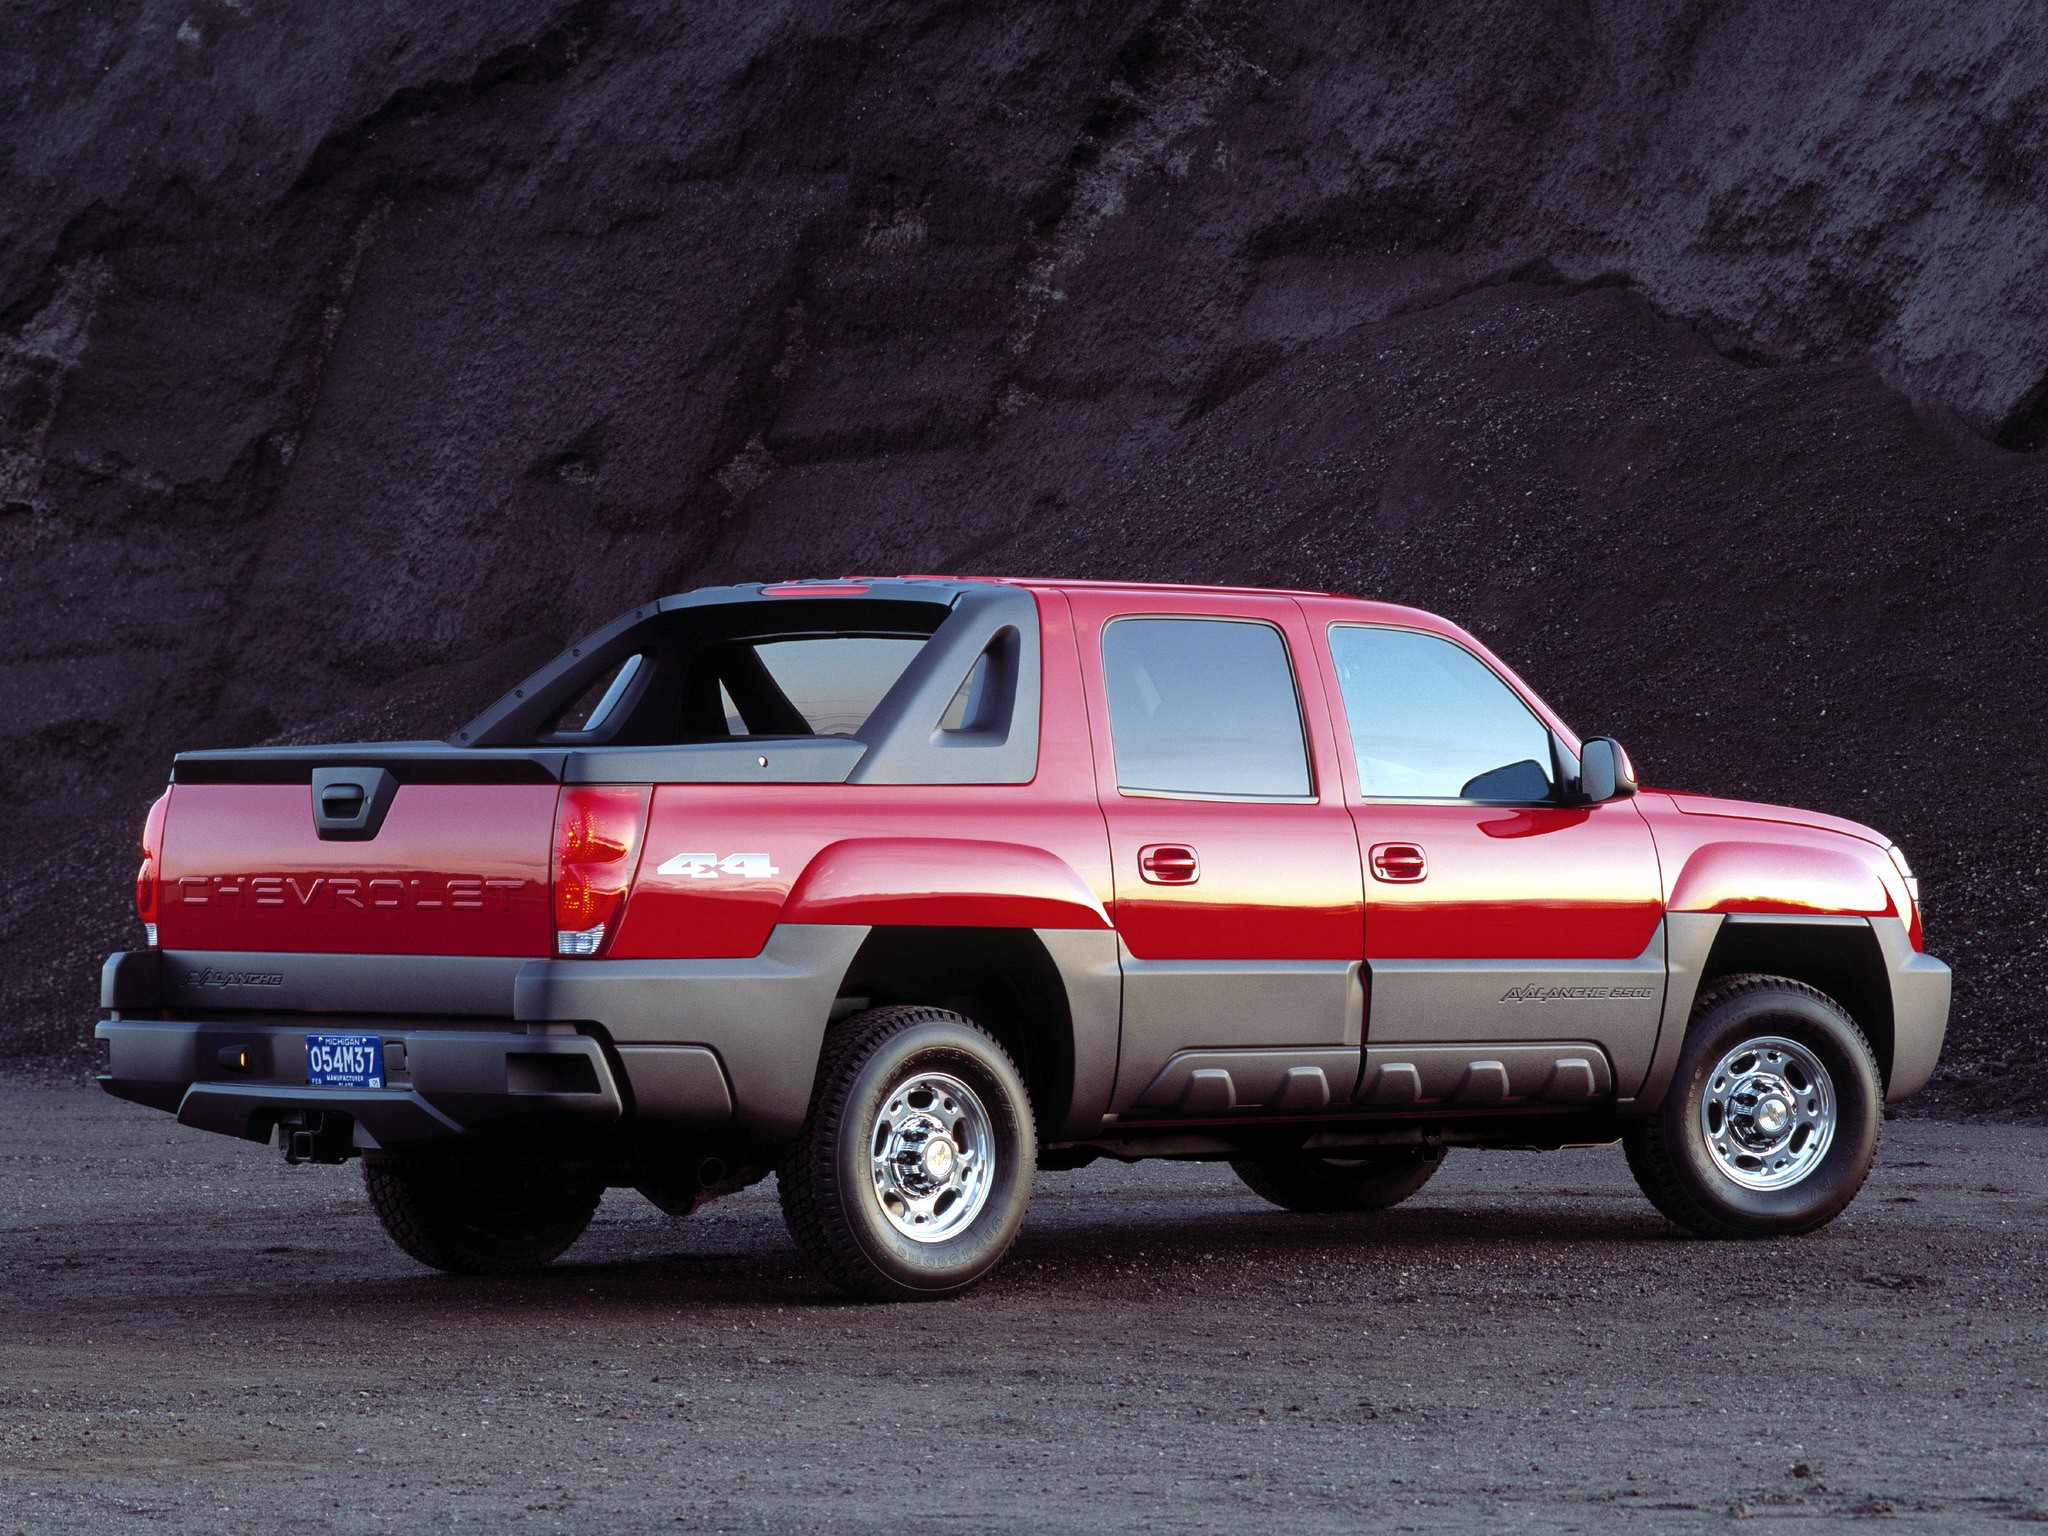 Chevrolet Avalanche 2001 on chevy 3 4 engine problems